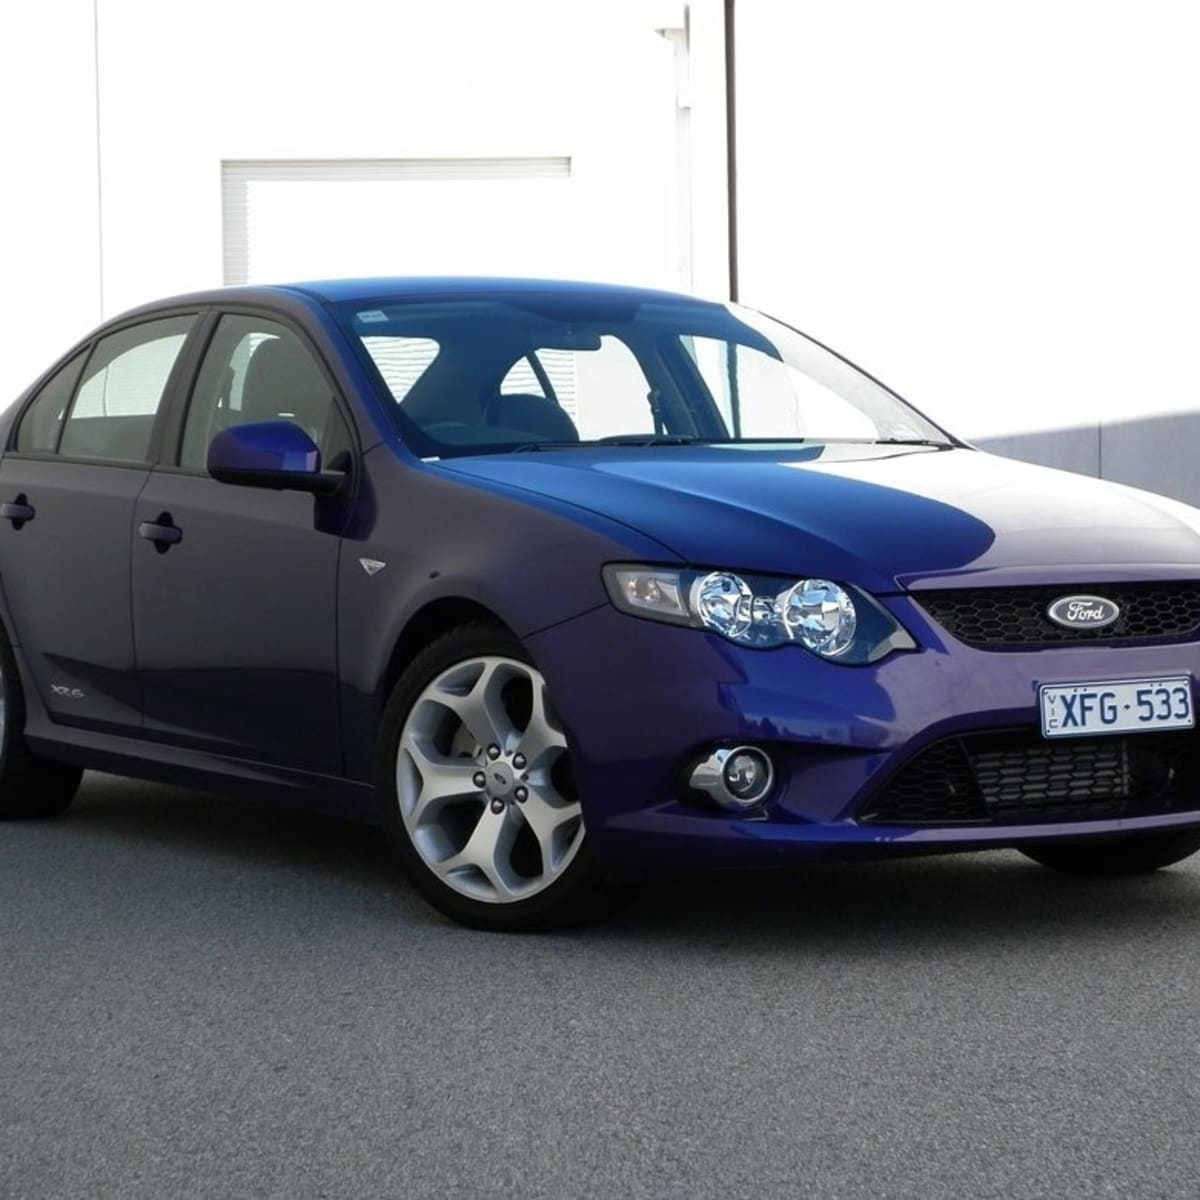 Ford Falcon Xr6 Turbo Review Caradvice